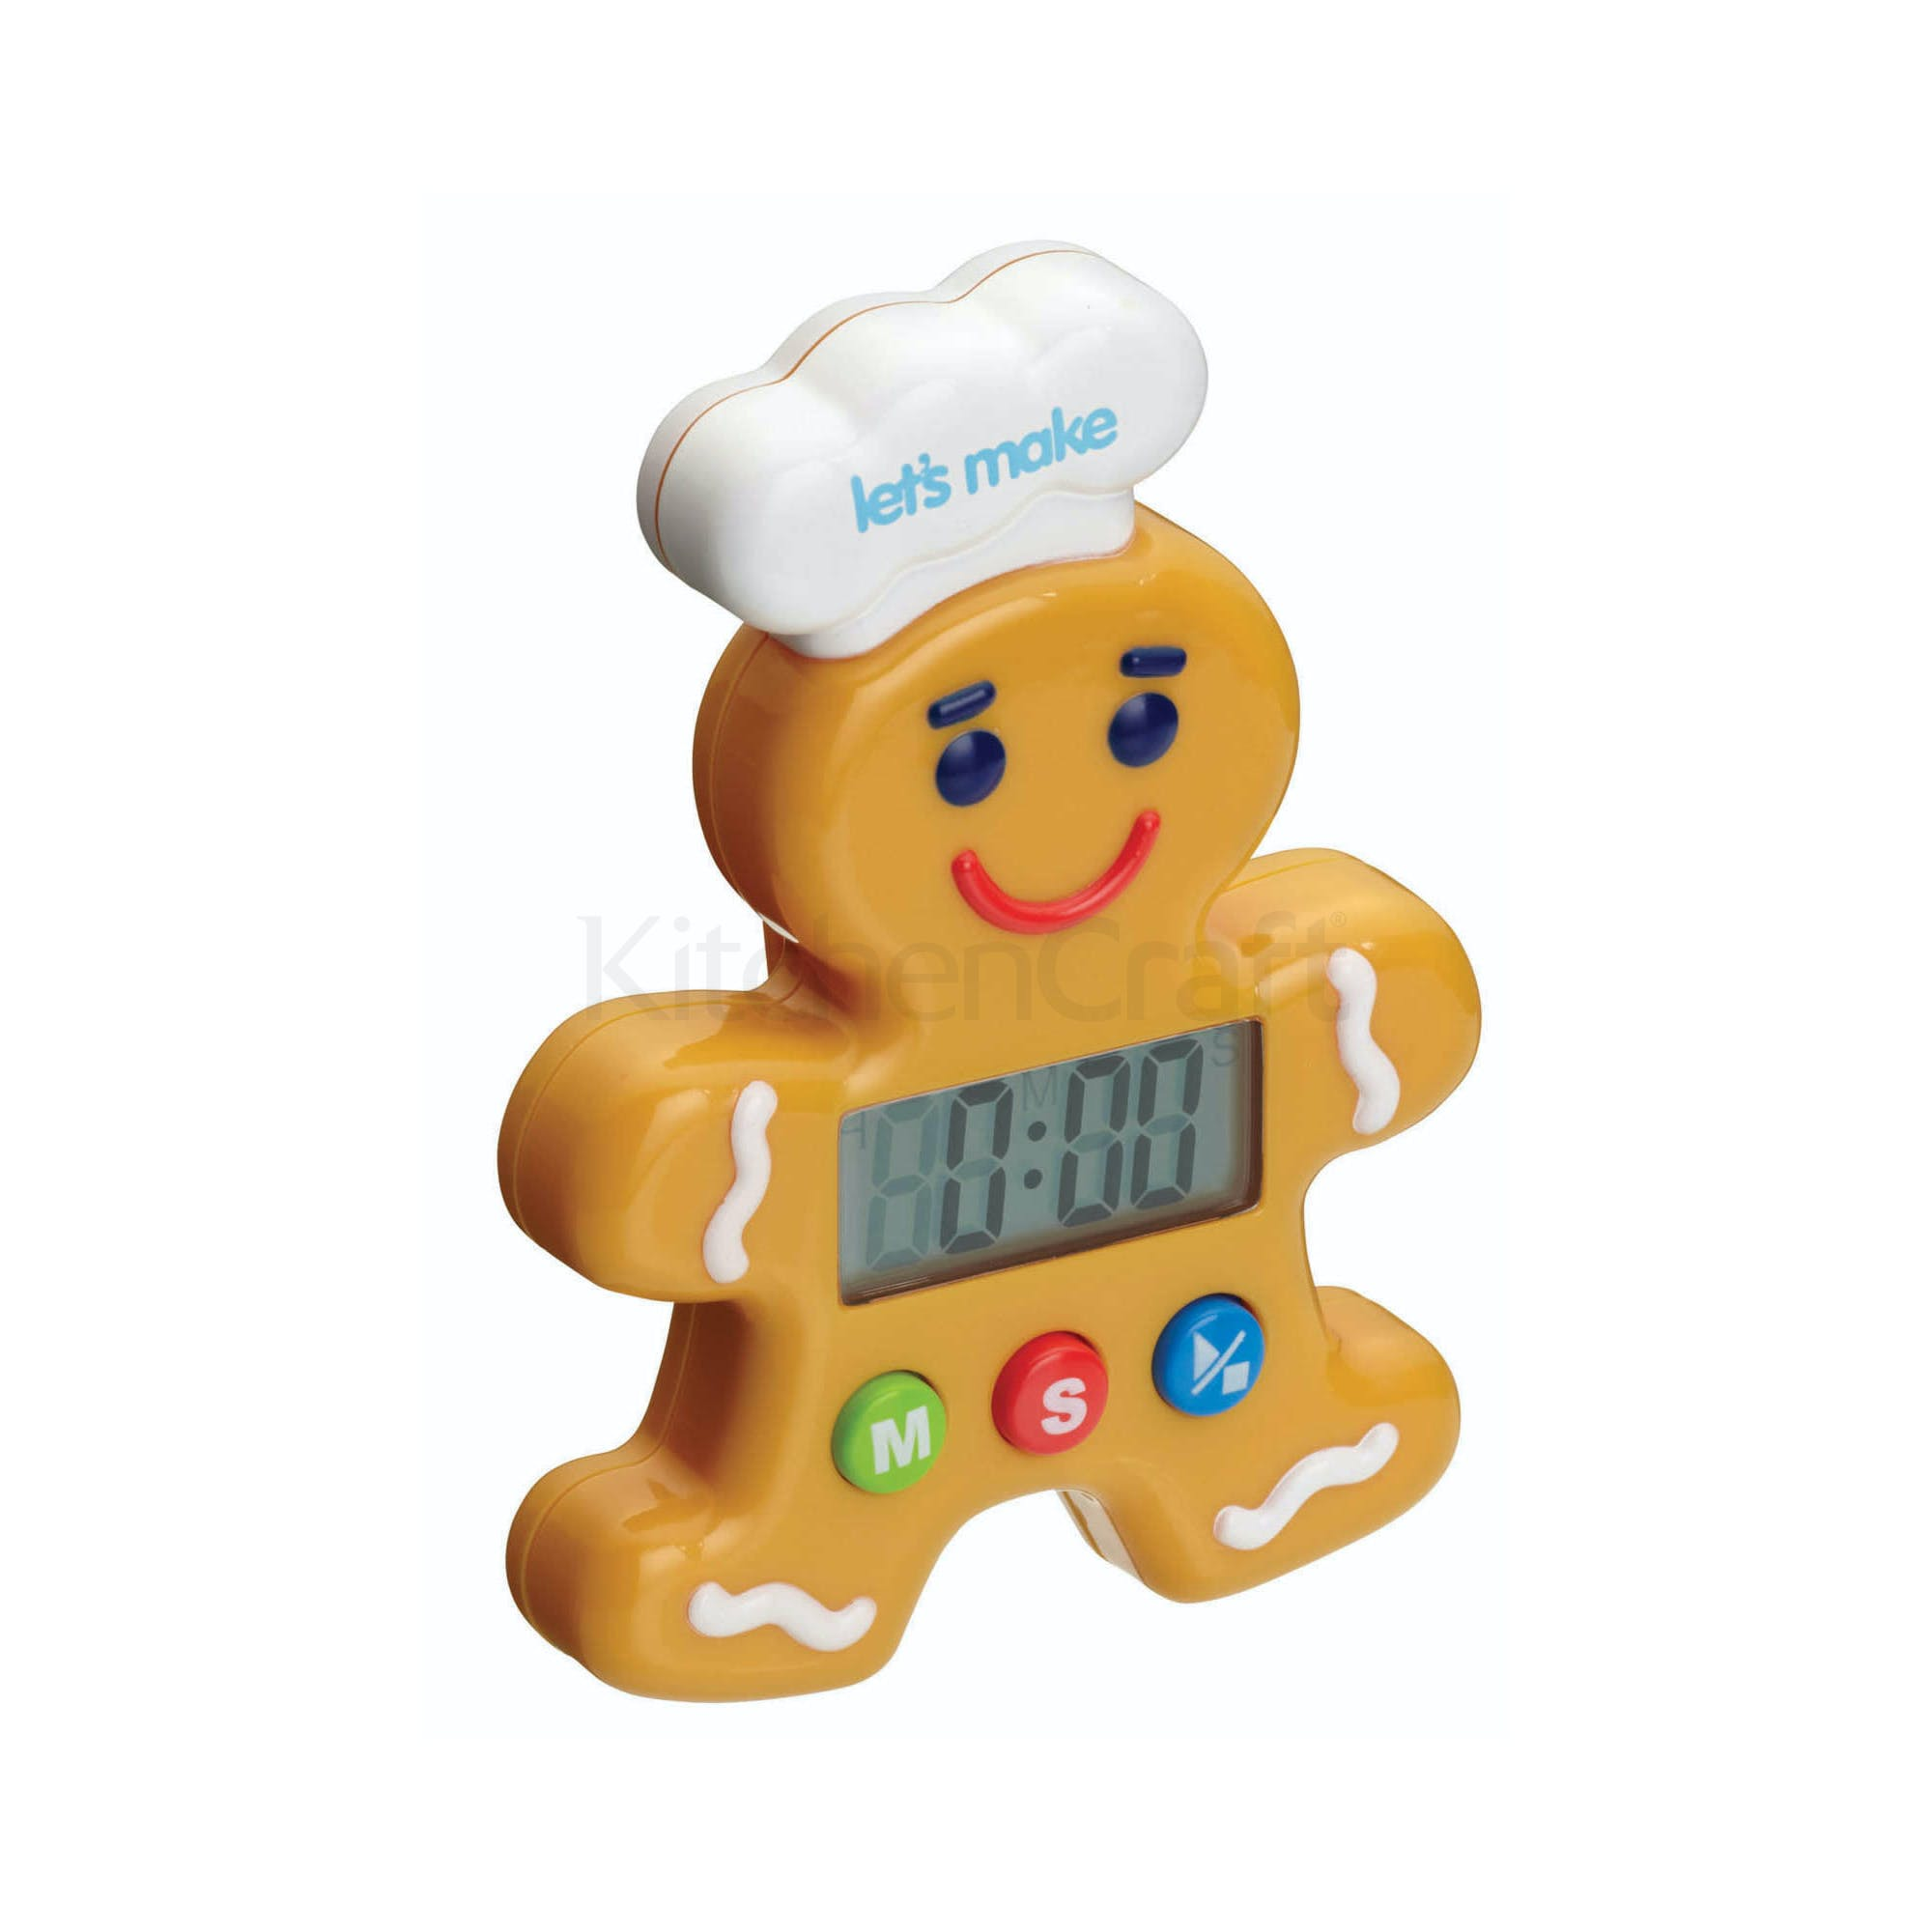 Let S Make Gingerbread Man Digital Timer Thermometers Timers